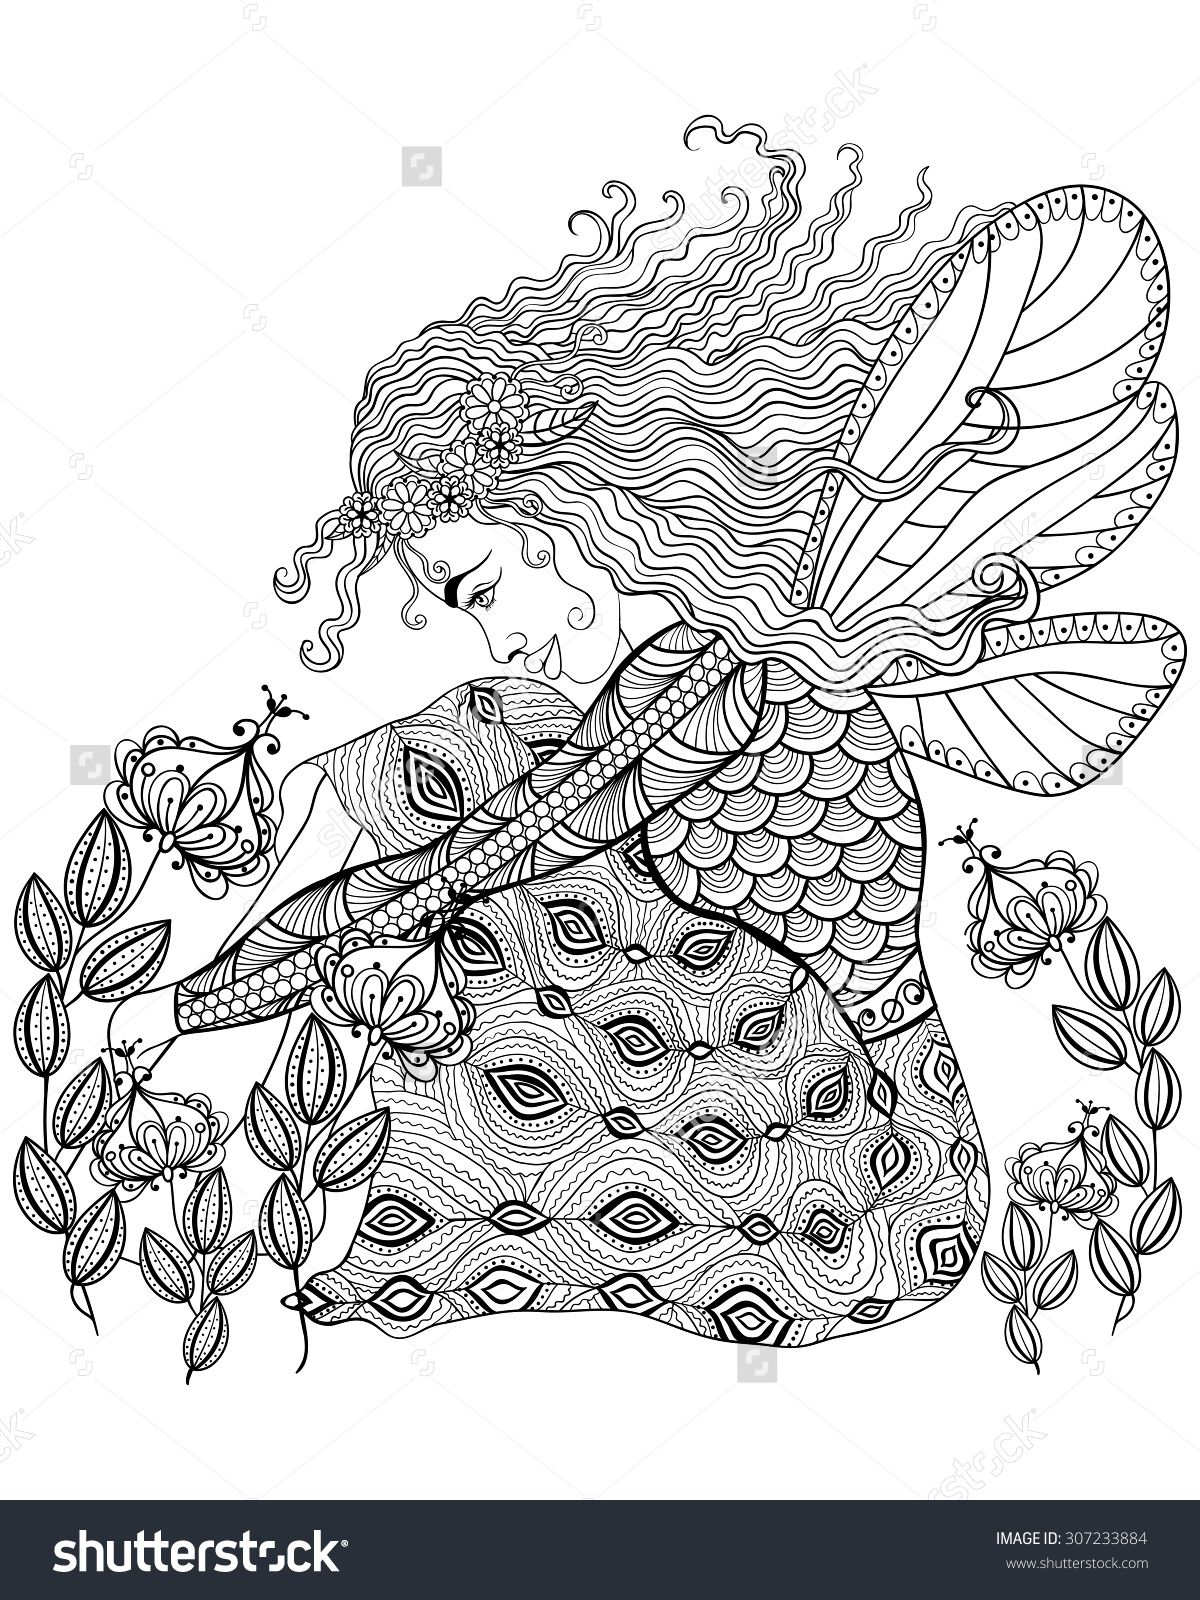 Magic Colouring Pages For Adults Google Search Fairy Coloring Pages Fairy Coloring Anti Stress Coloring Book [ 1600 x 1200 Pixel ]